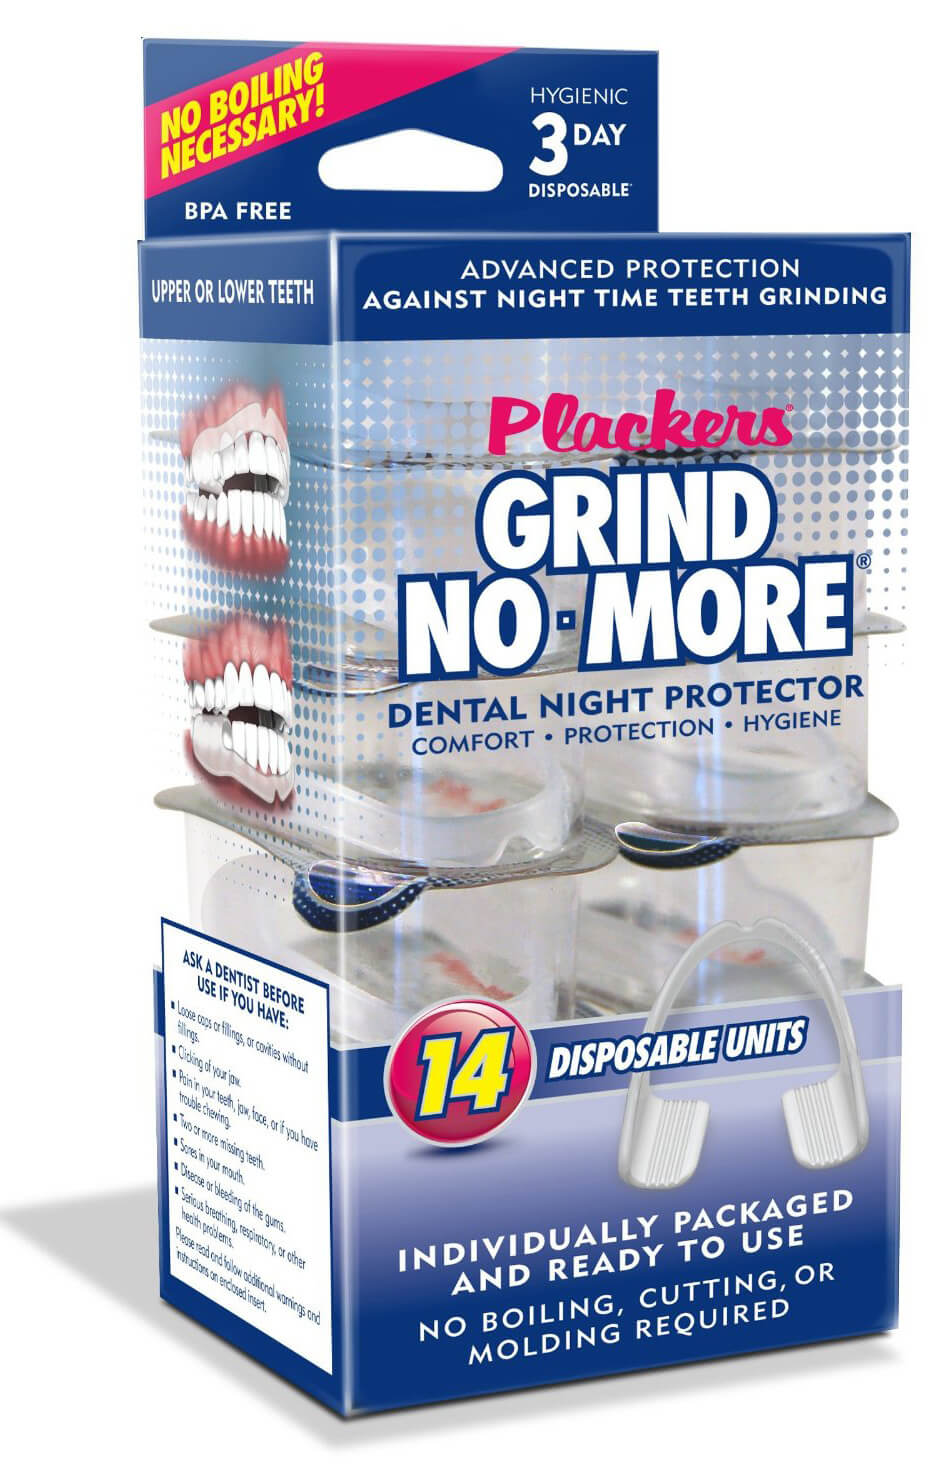 Plackers Grind No More Disposable Night Guards Review